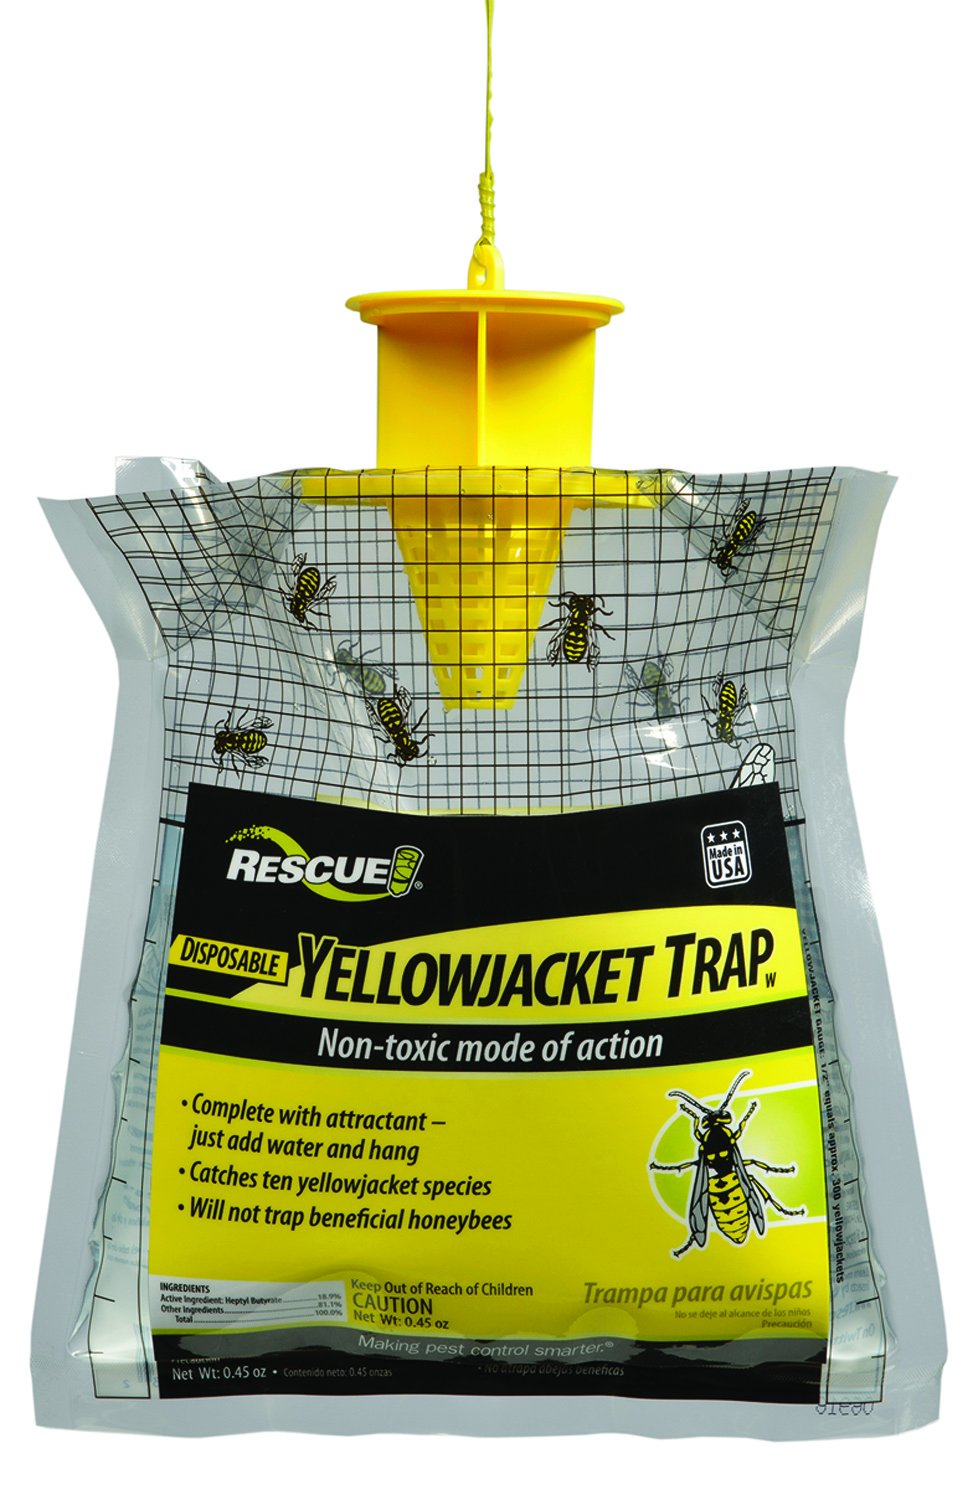 RESCUE! Non-Toxic Disposable Yellowjacket Trap, West of the Rockies